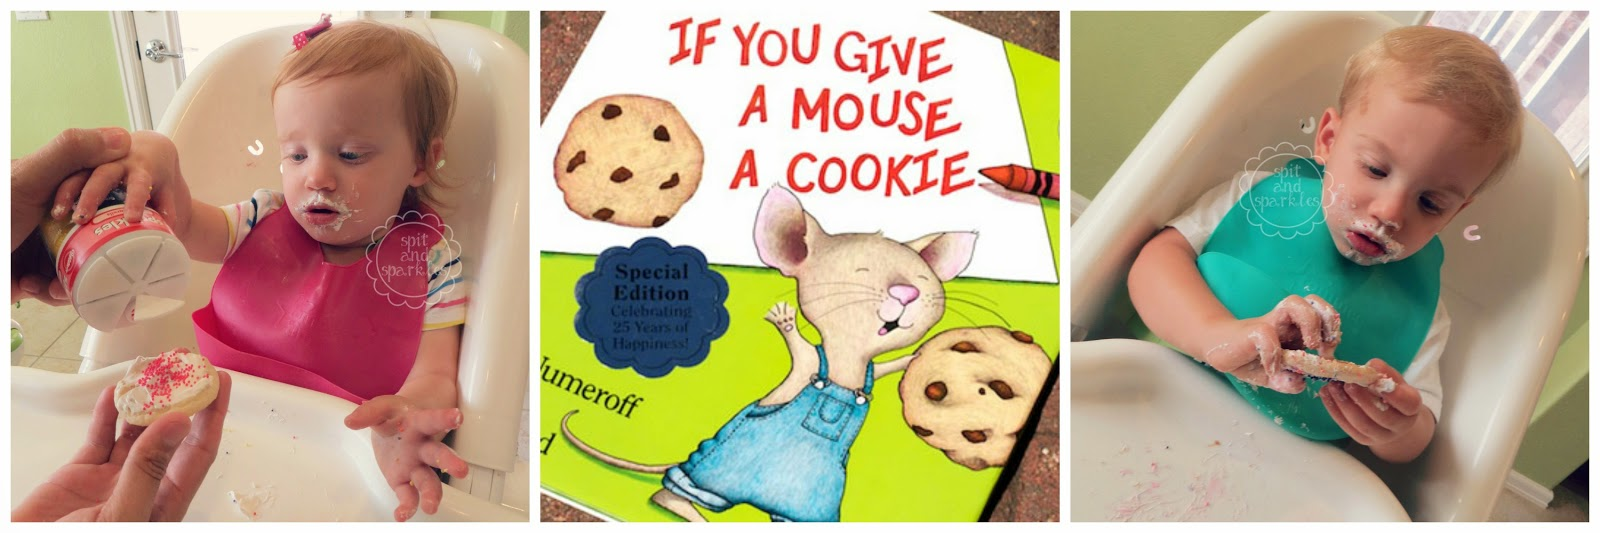 Happy Valentines Day Mouse! If You Give Series by